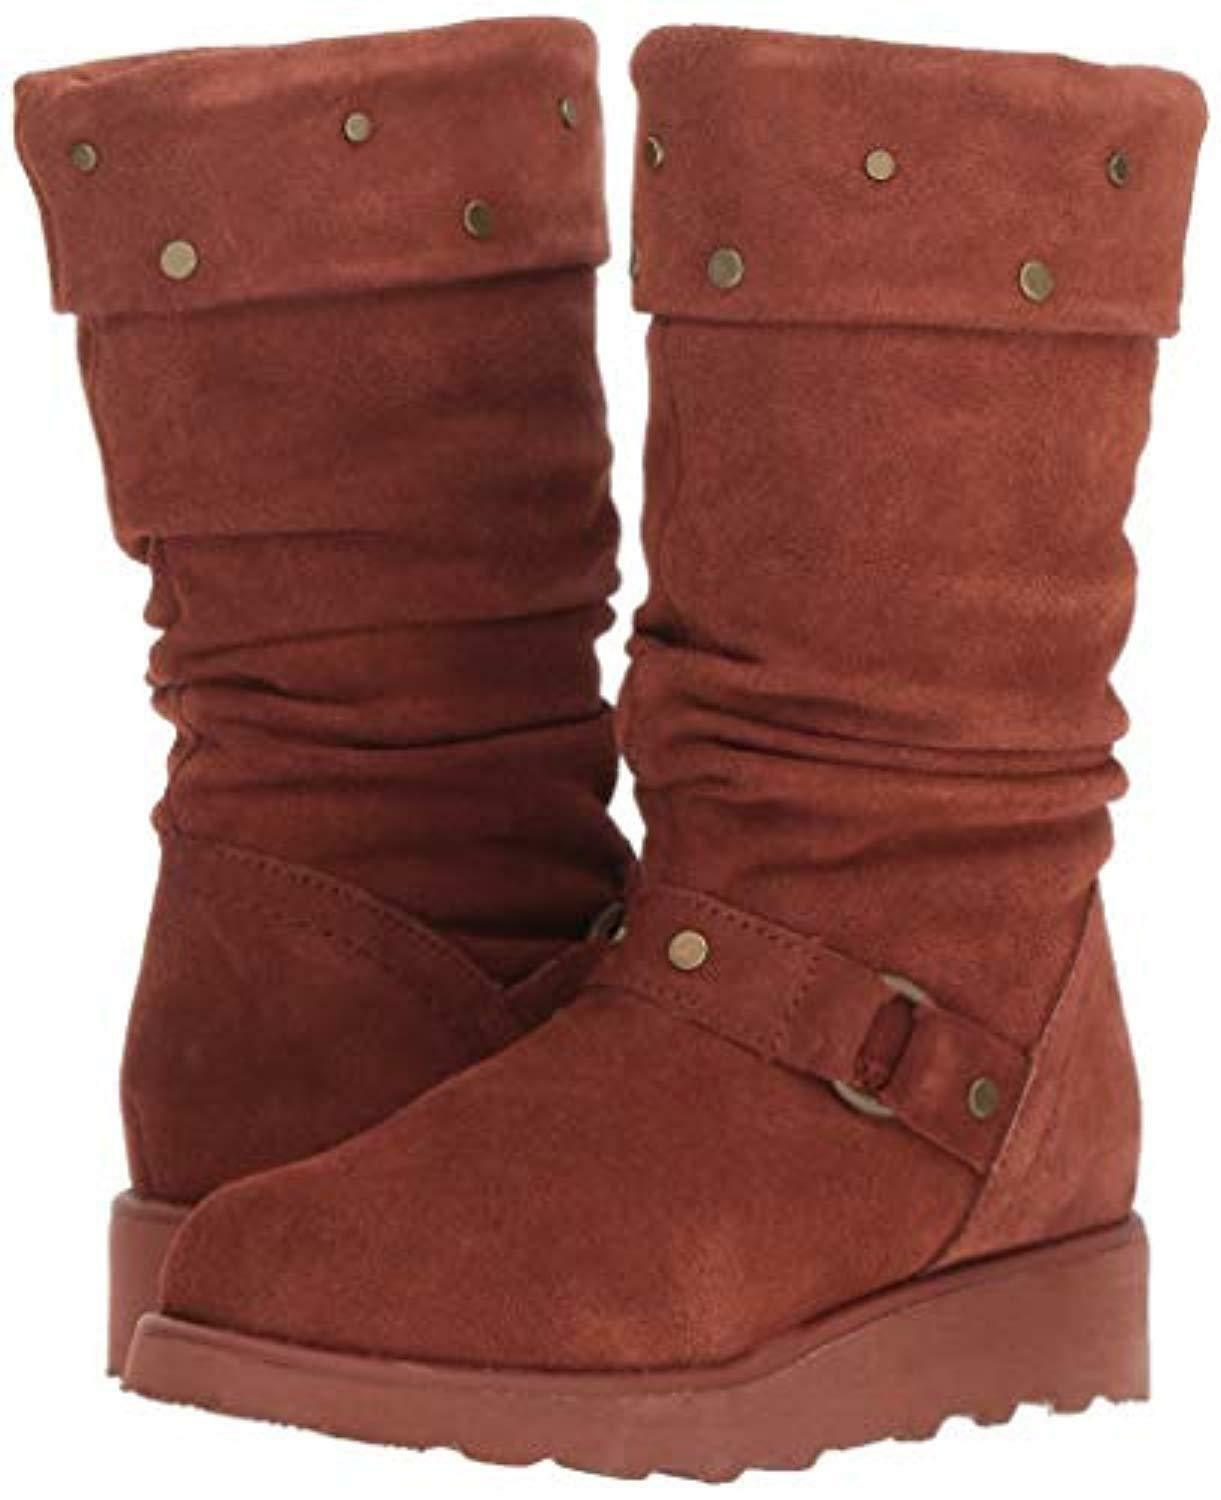 Bearpaw Eureka Youth - Kids' Tall bota -  Russet - 2 M US Little Kid